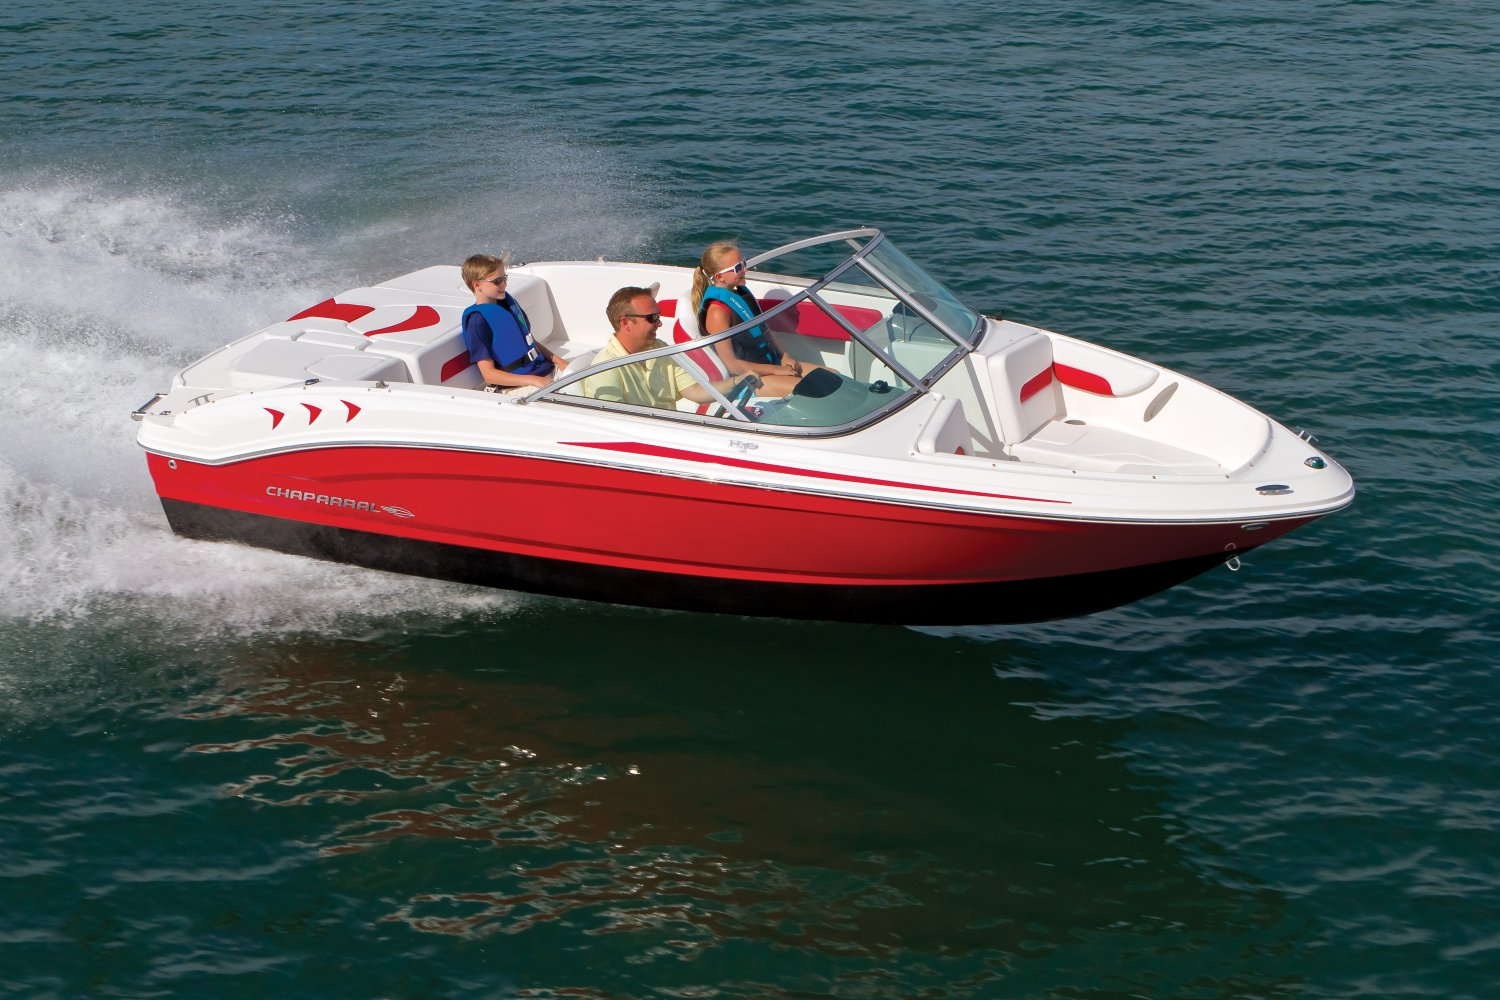 Eevelle V Hull Runabout Boat